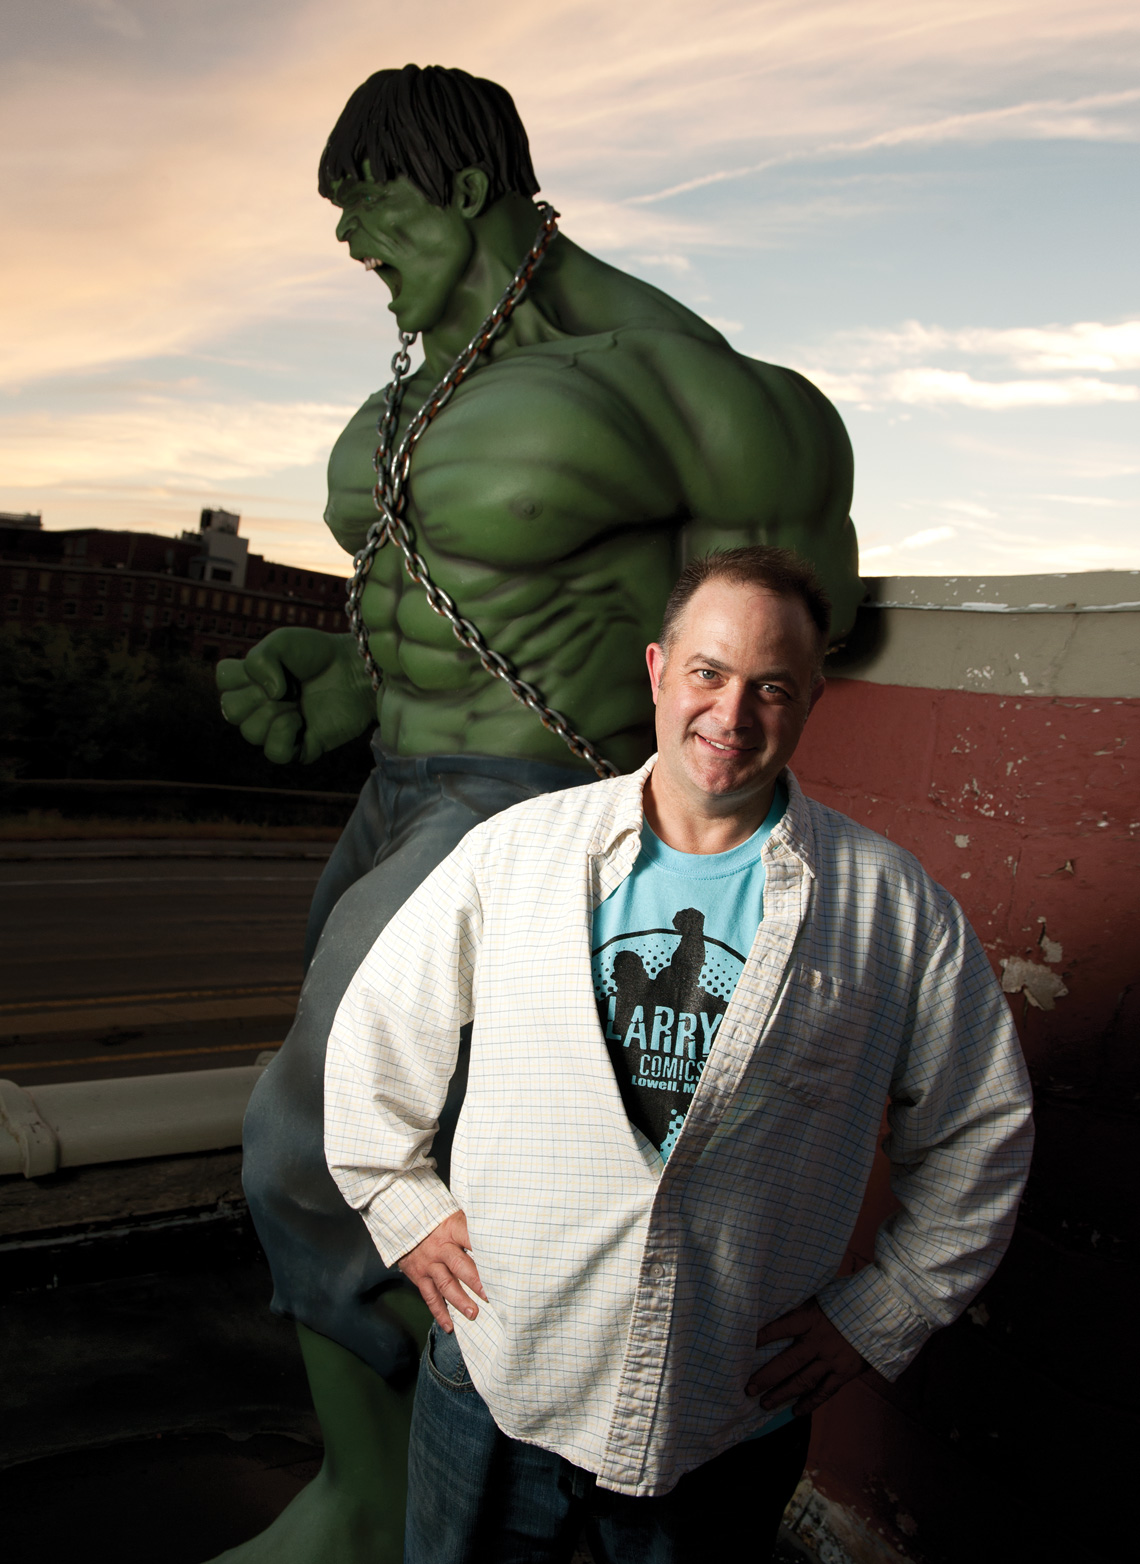 Larry Doherty poses with a life-size Incredible Hulk on the roof of his store, a visible sign to drivers along the VFW highway in Lowell. Photo by Kevin Harkins.